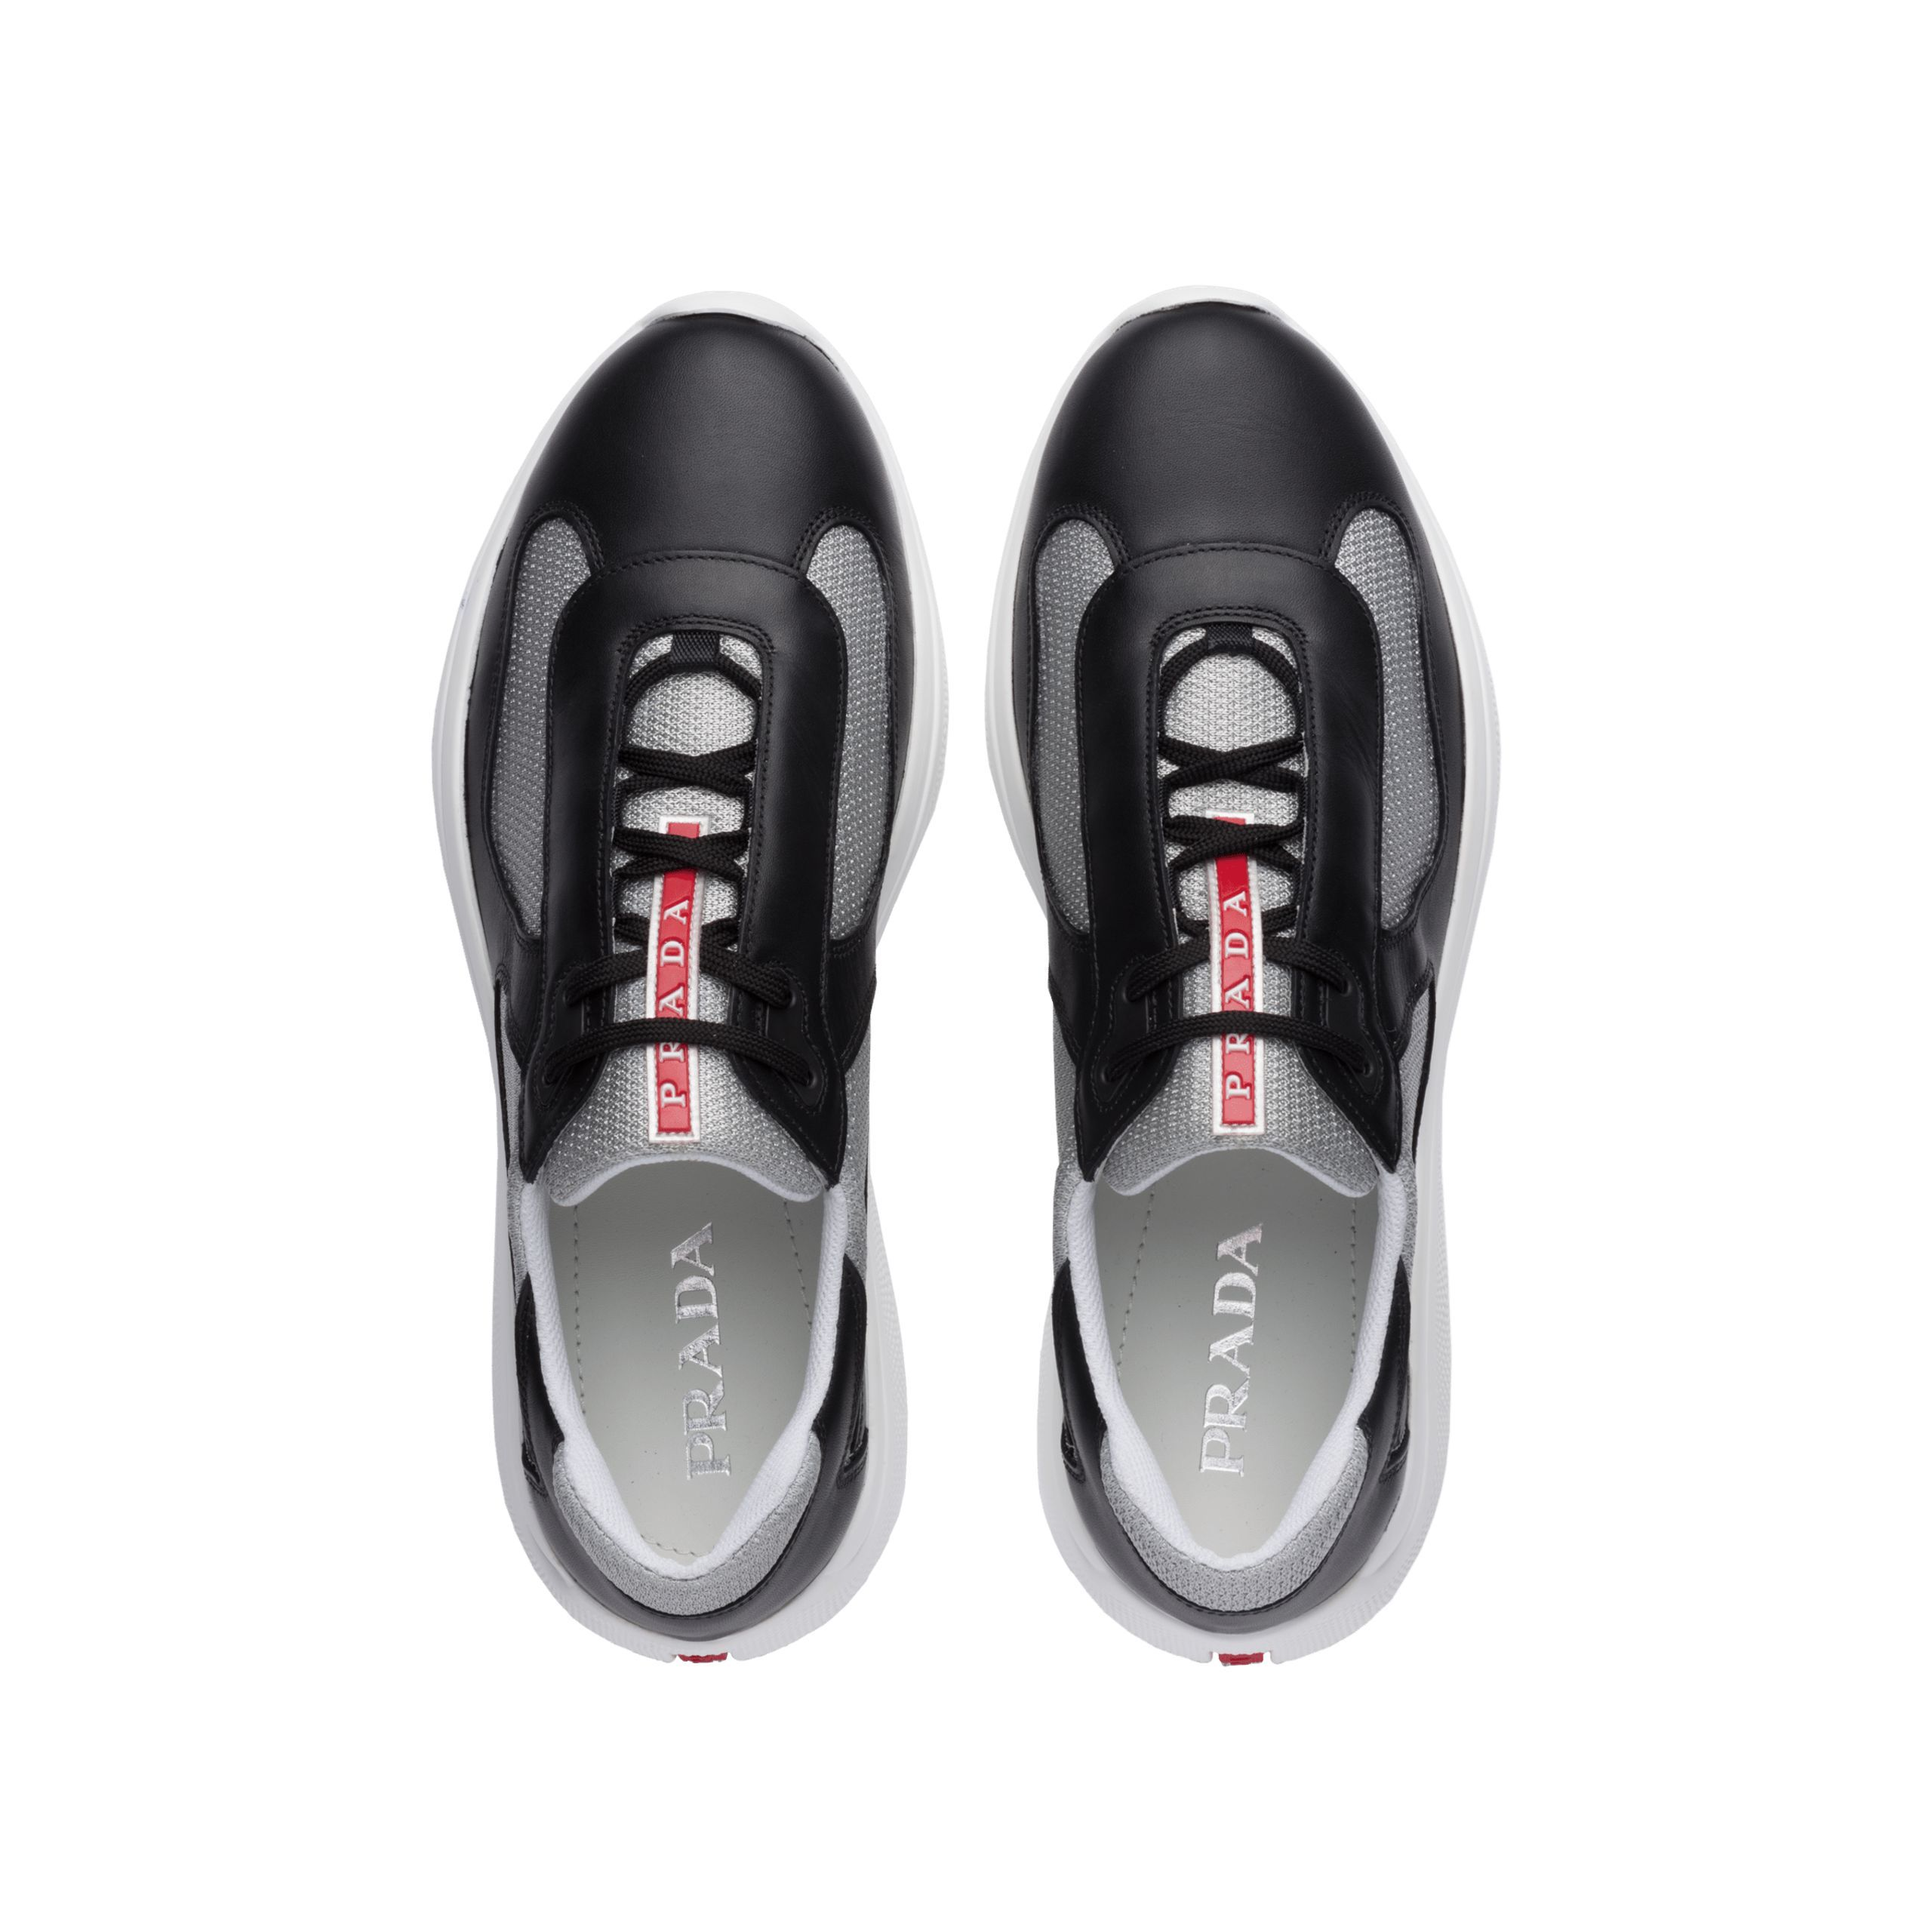 Leather and technical fabric sneakers